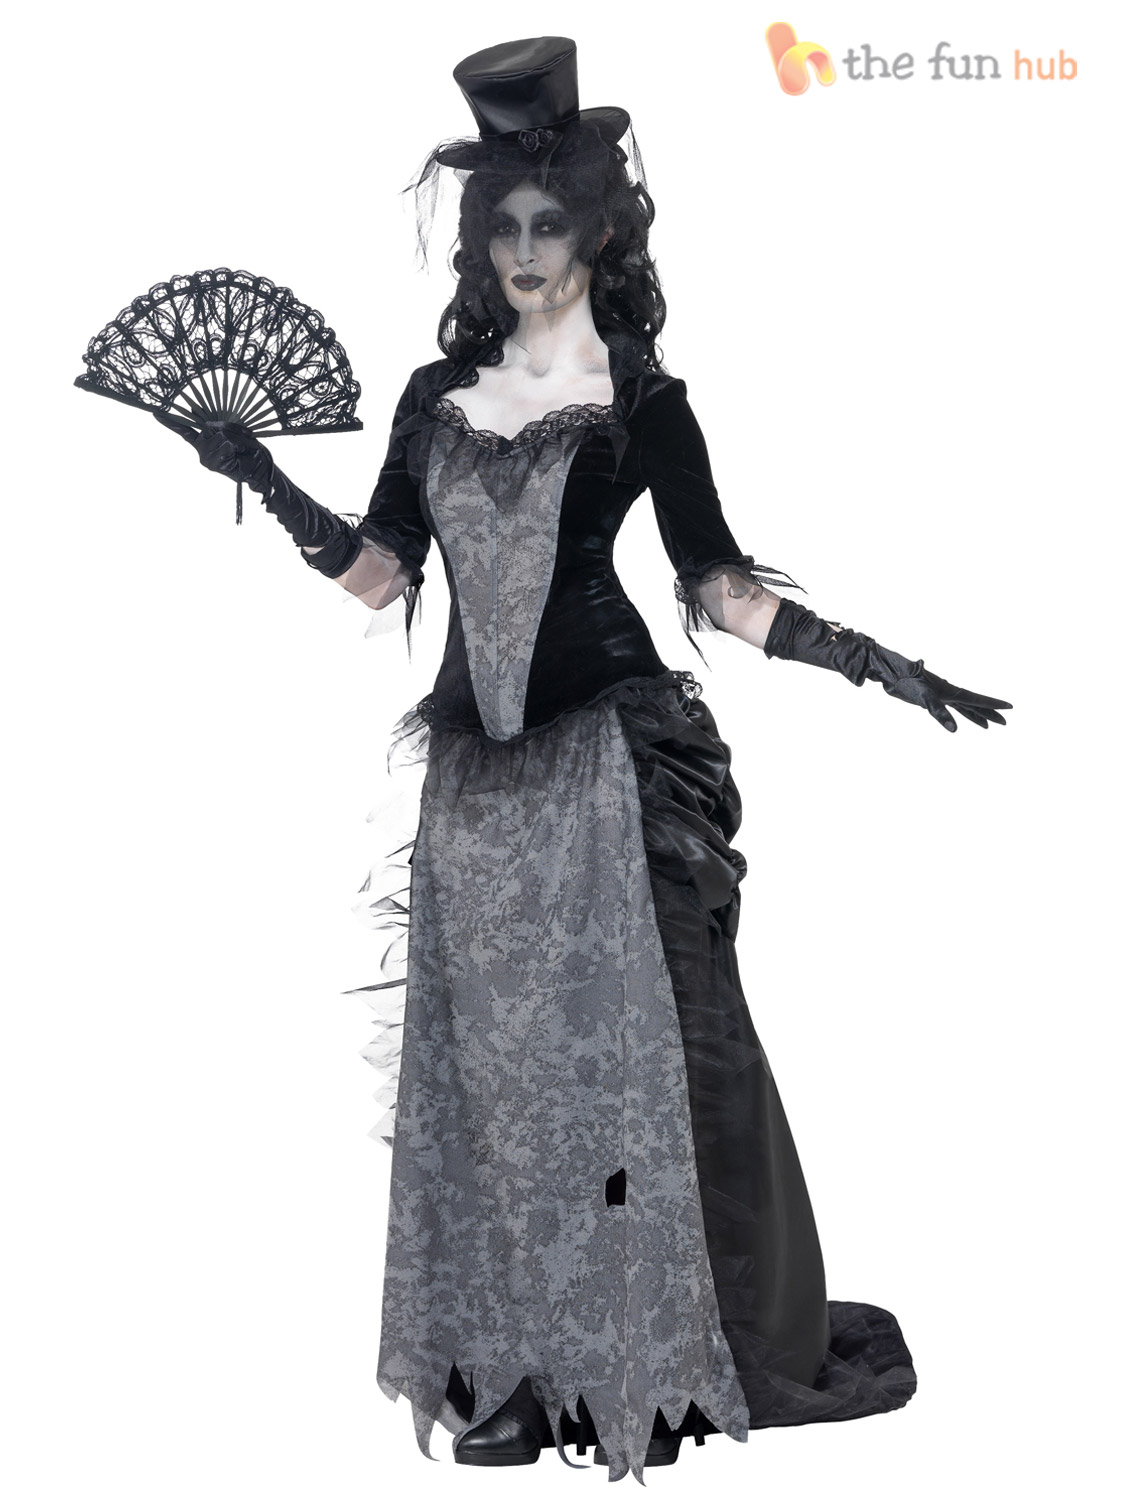 ladies ghostly black widow costume zombie ladies halloween fancy dress outfit. Black Bedroom Furniture Sets. Home Design Ideas